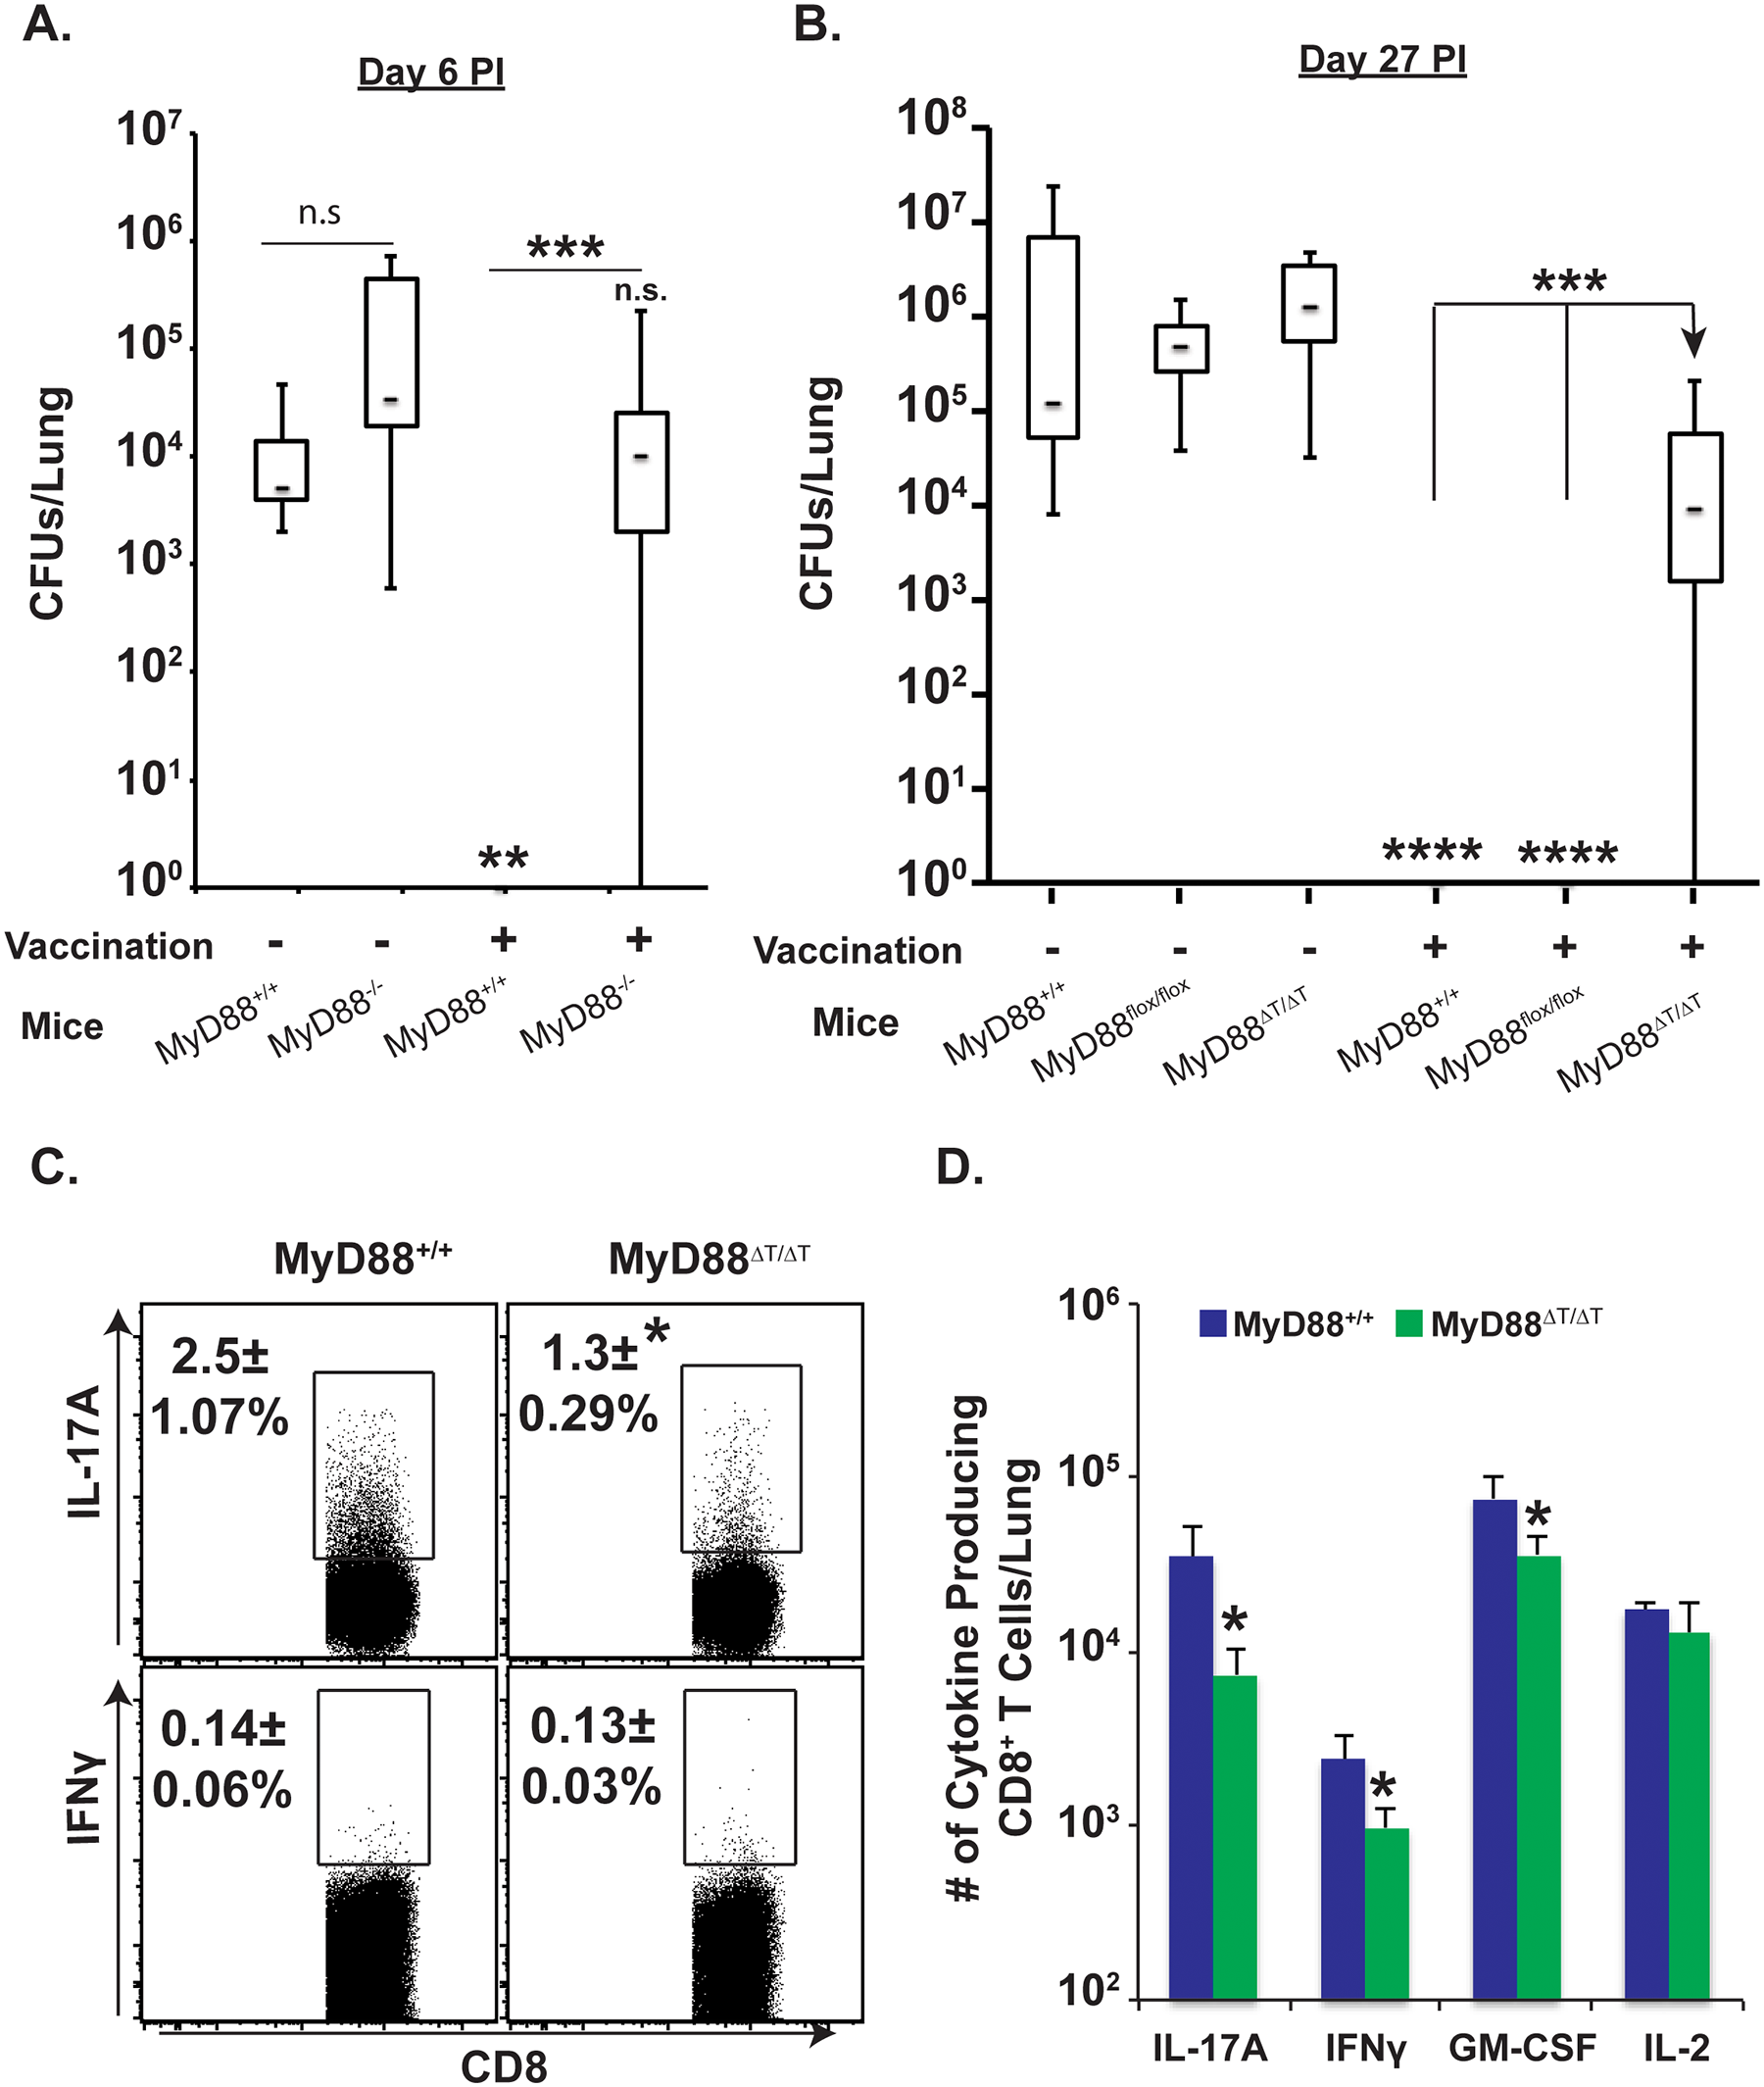 Intrinsic MyD88 signaling in CD8 T cells is required for vaccine immunity.